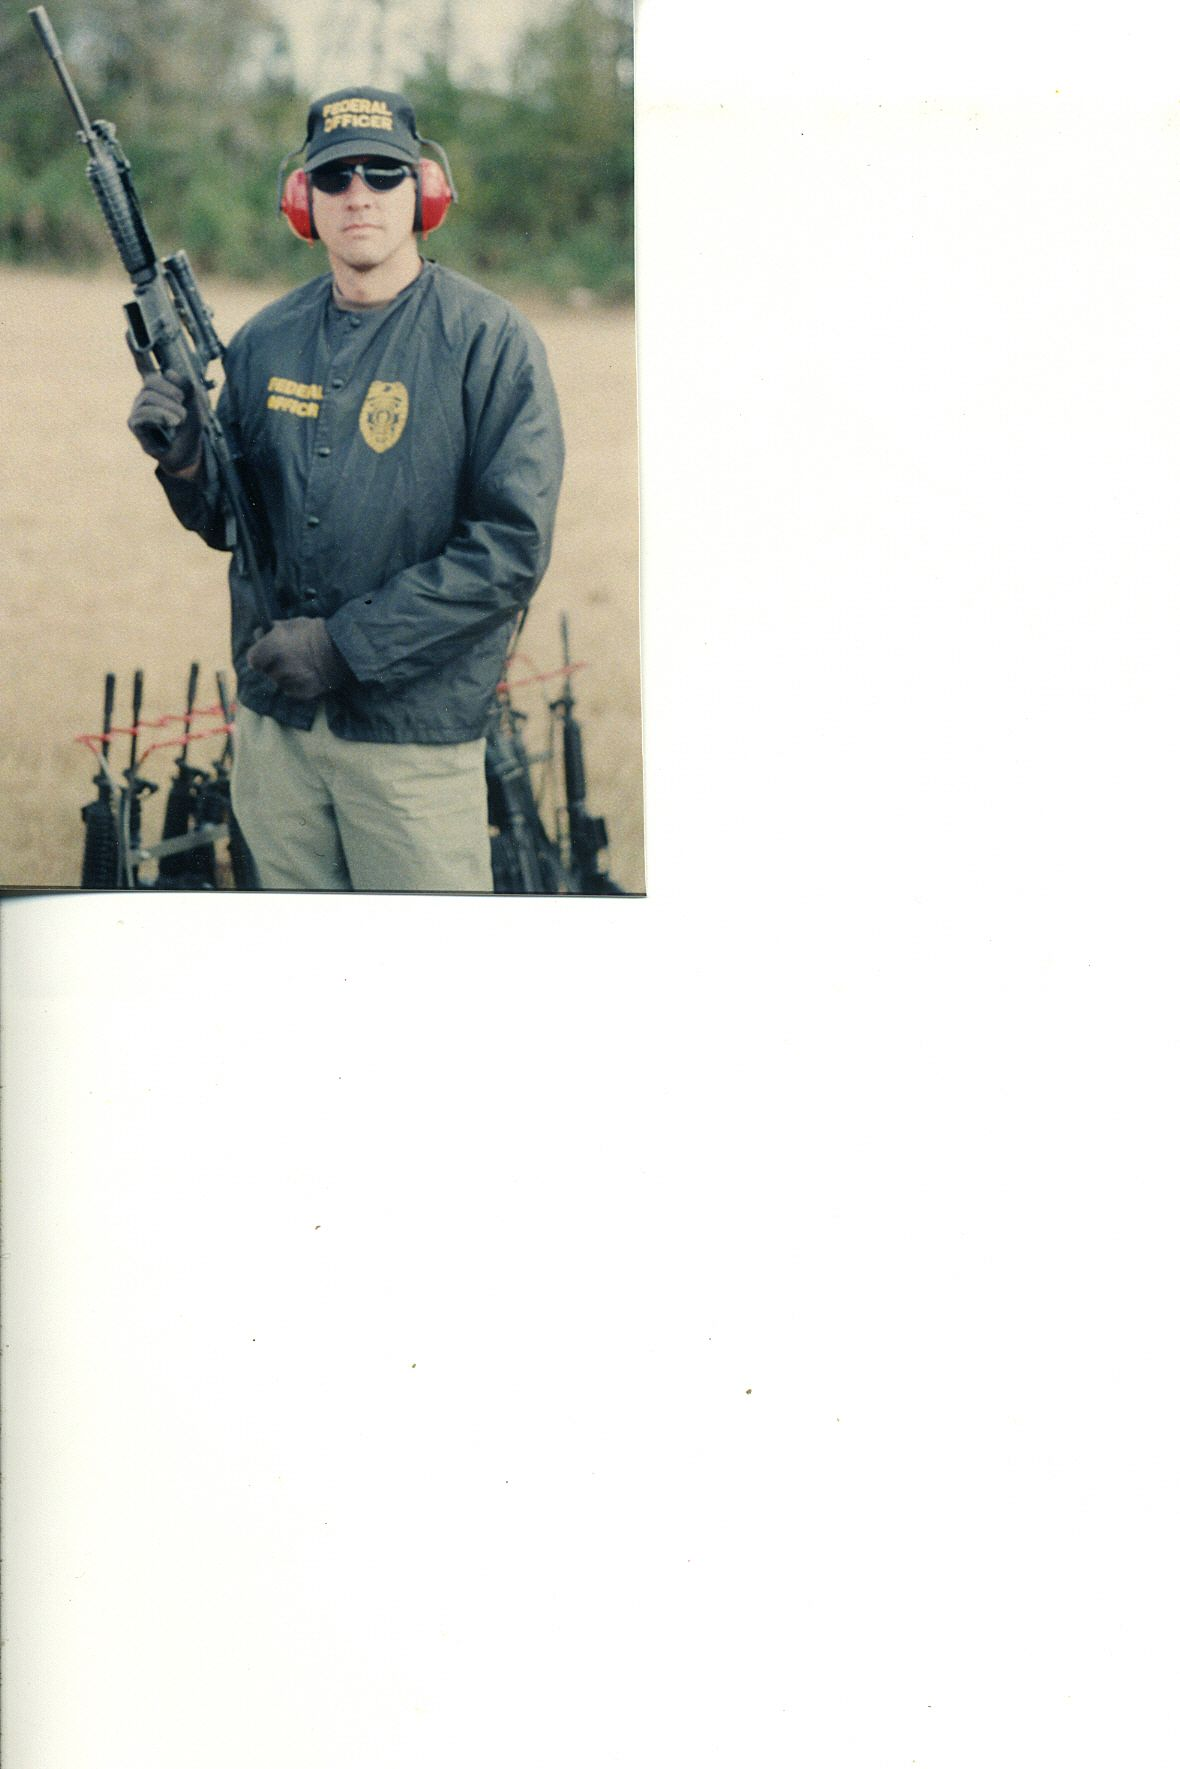 Federal Officer Bill in training, '90s.